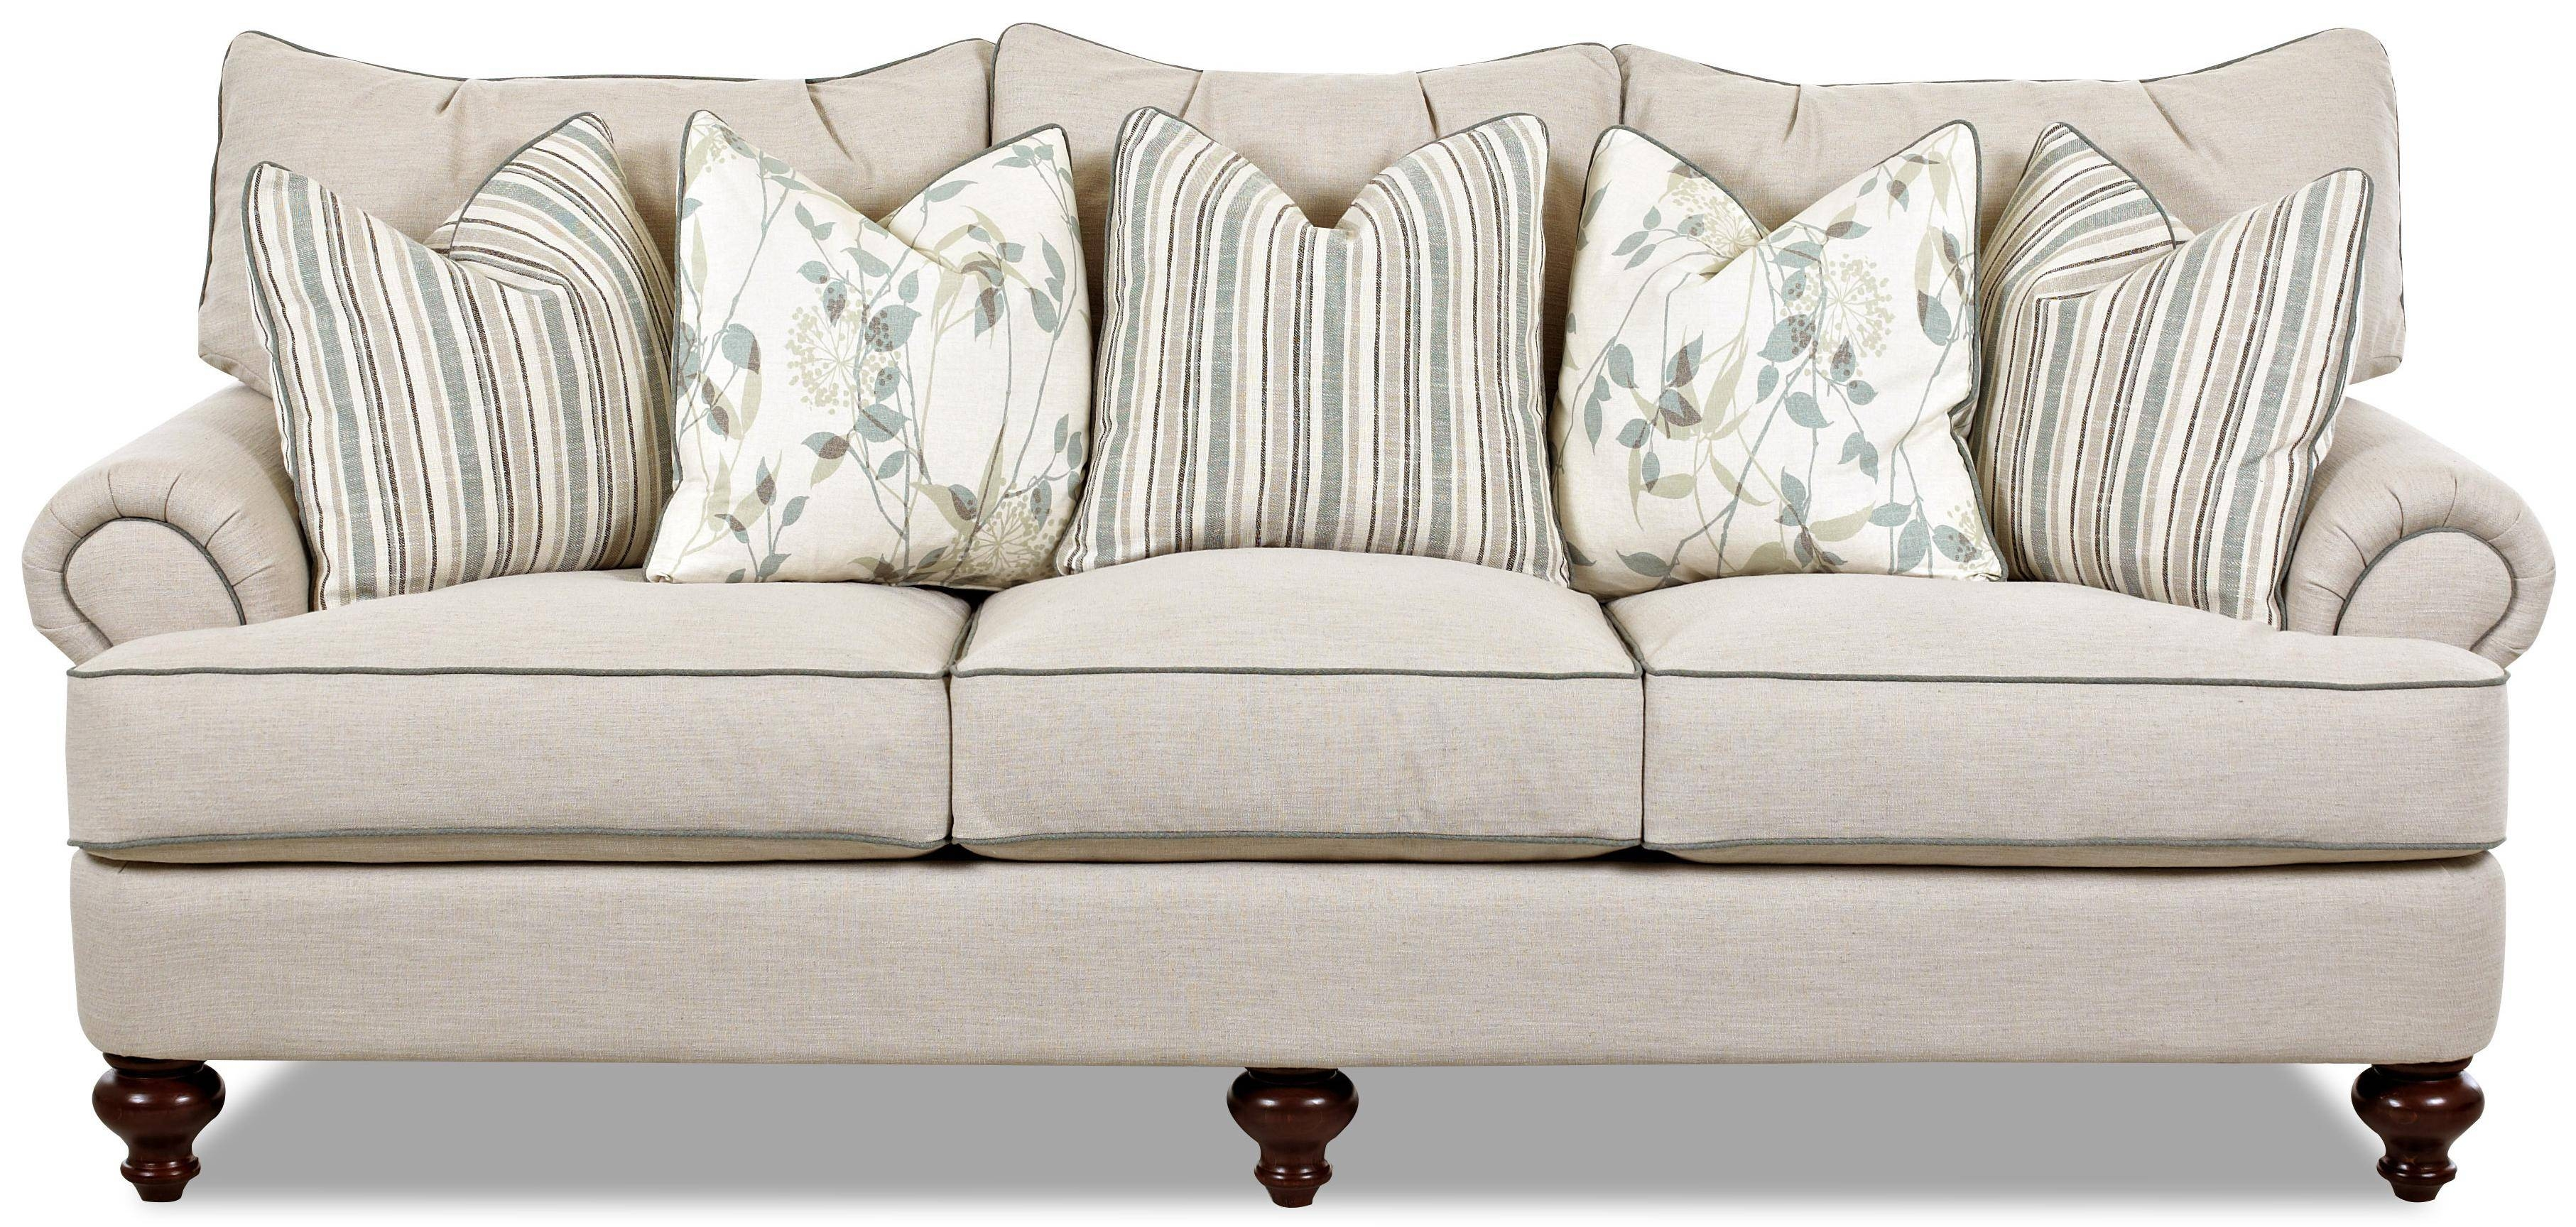 Shabby Chic Sectional Sofaklaussner | Wolf And Gardiner Wolf within Shabby Chic Sectional Sofas Couches (Image 14 of 15)